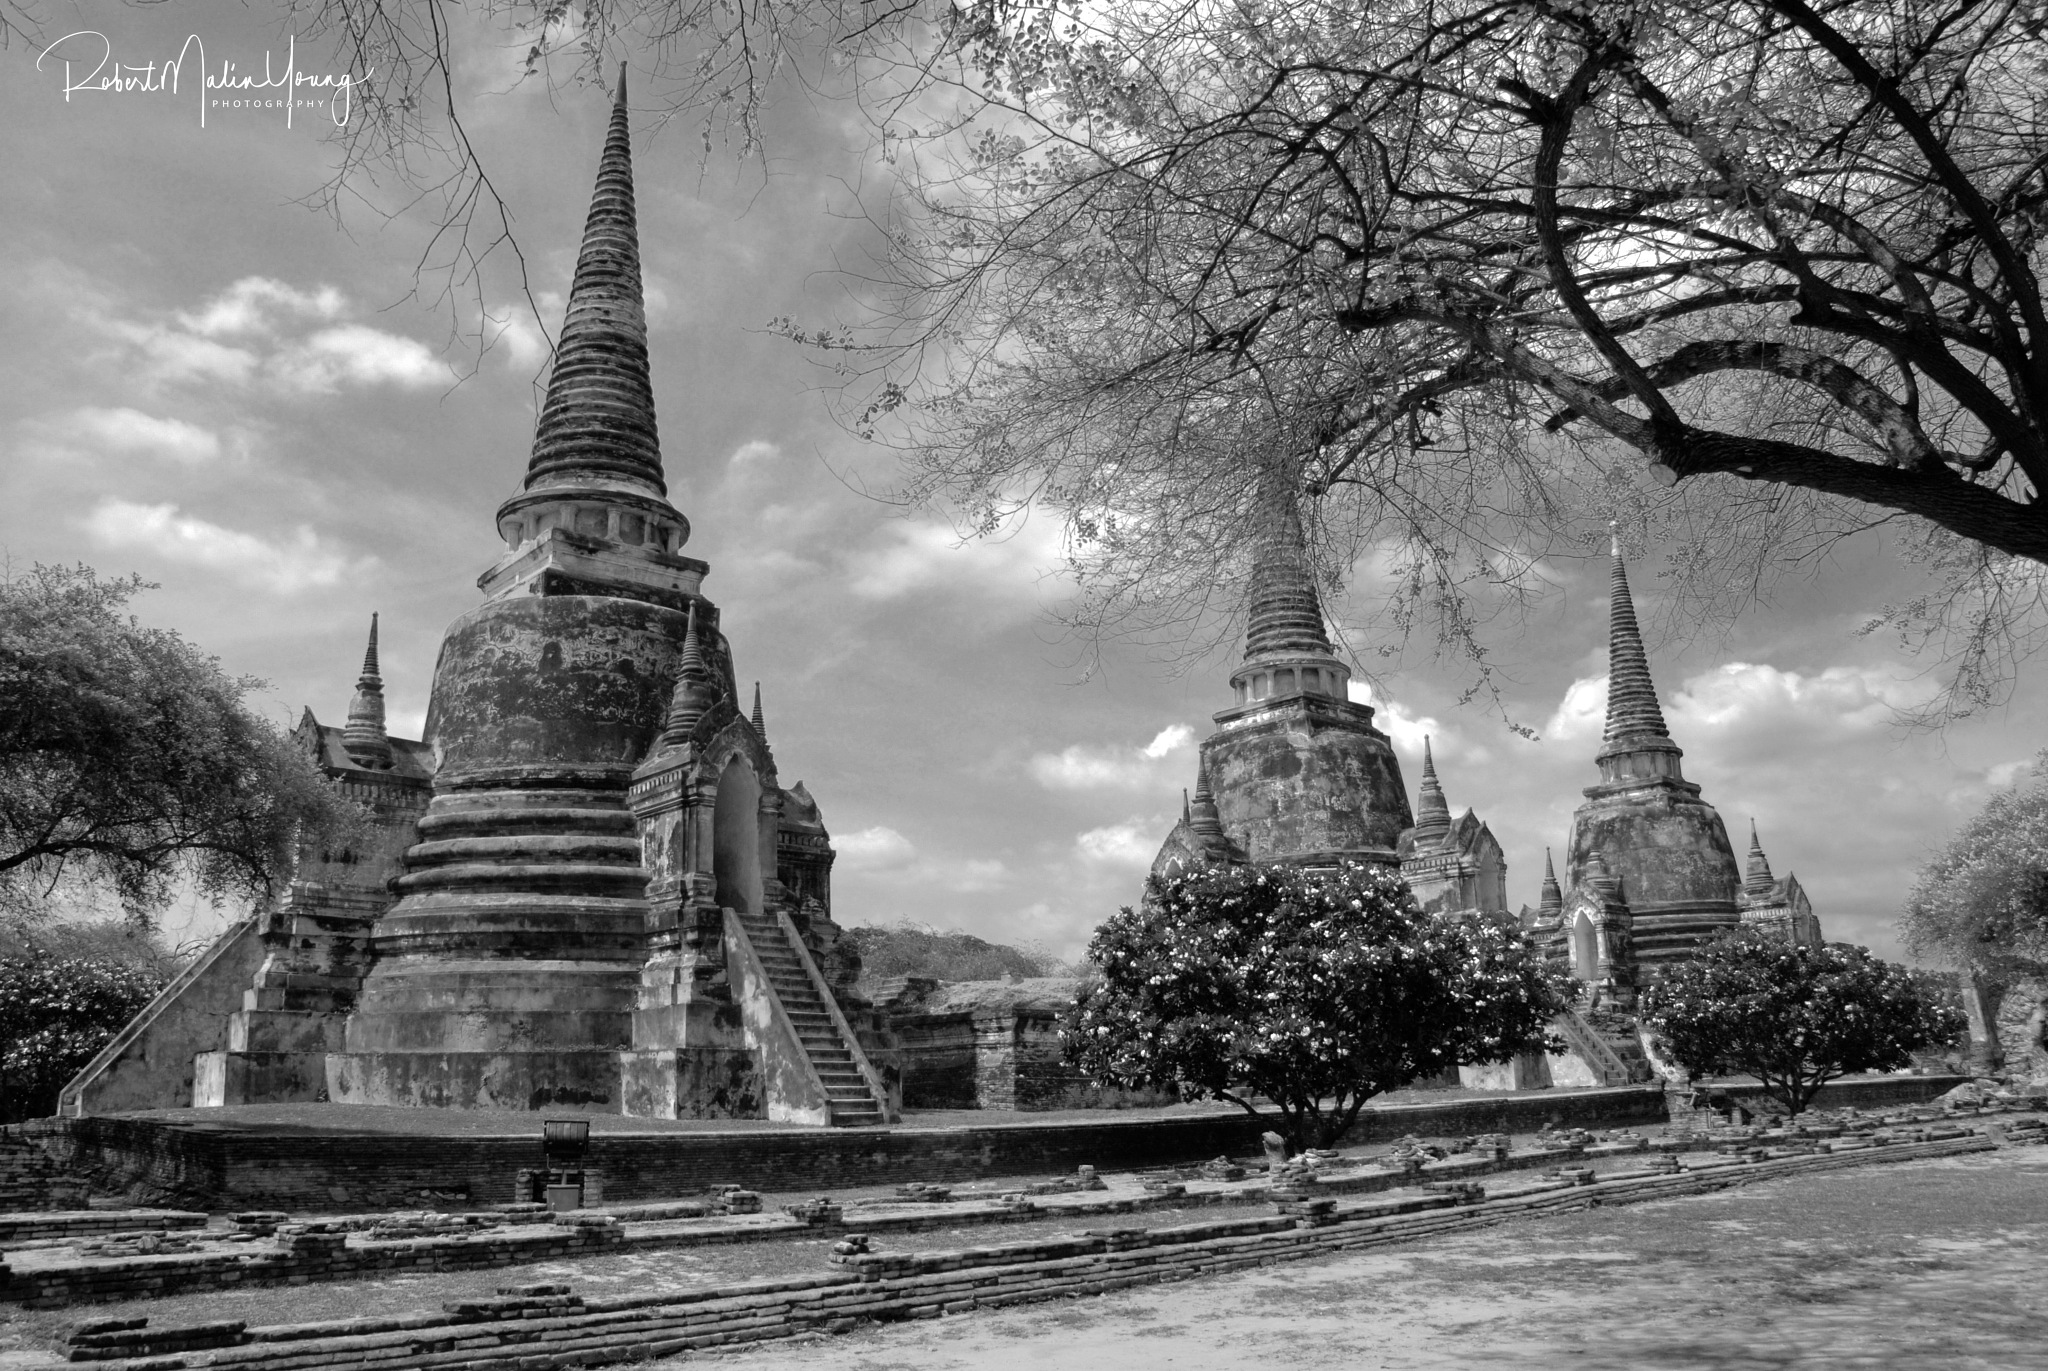 Thailand 2018 by Robert Malin Young